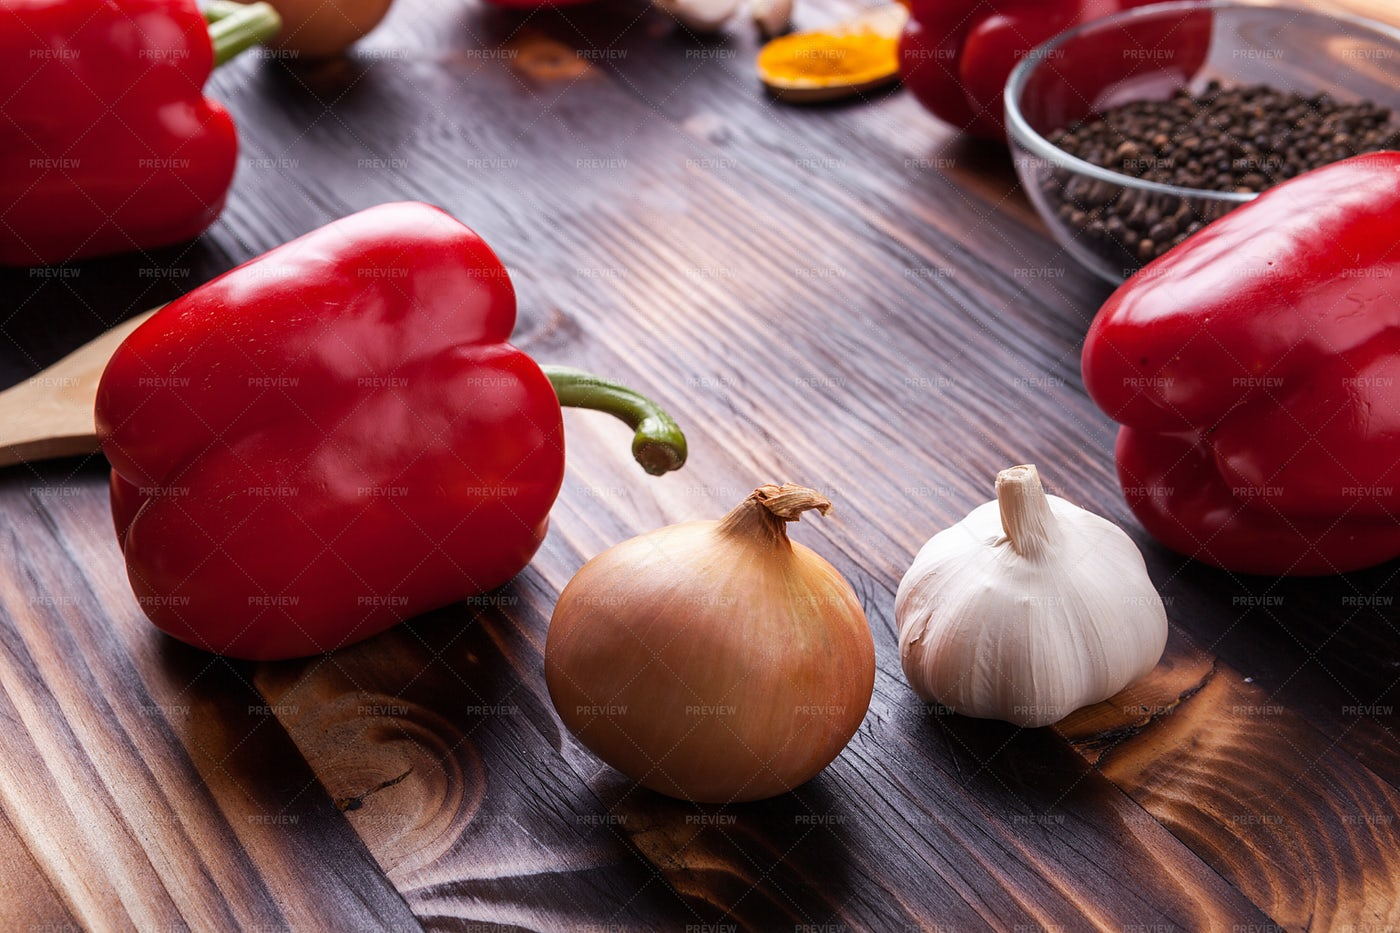 Onions, Peppers, Garlic: Stock Photos